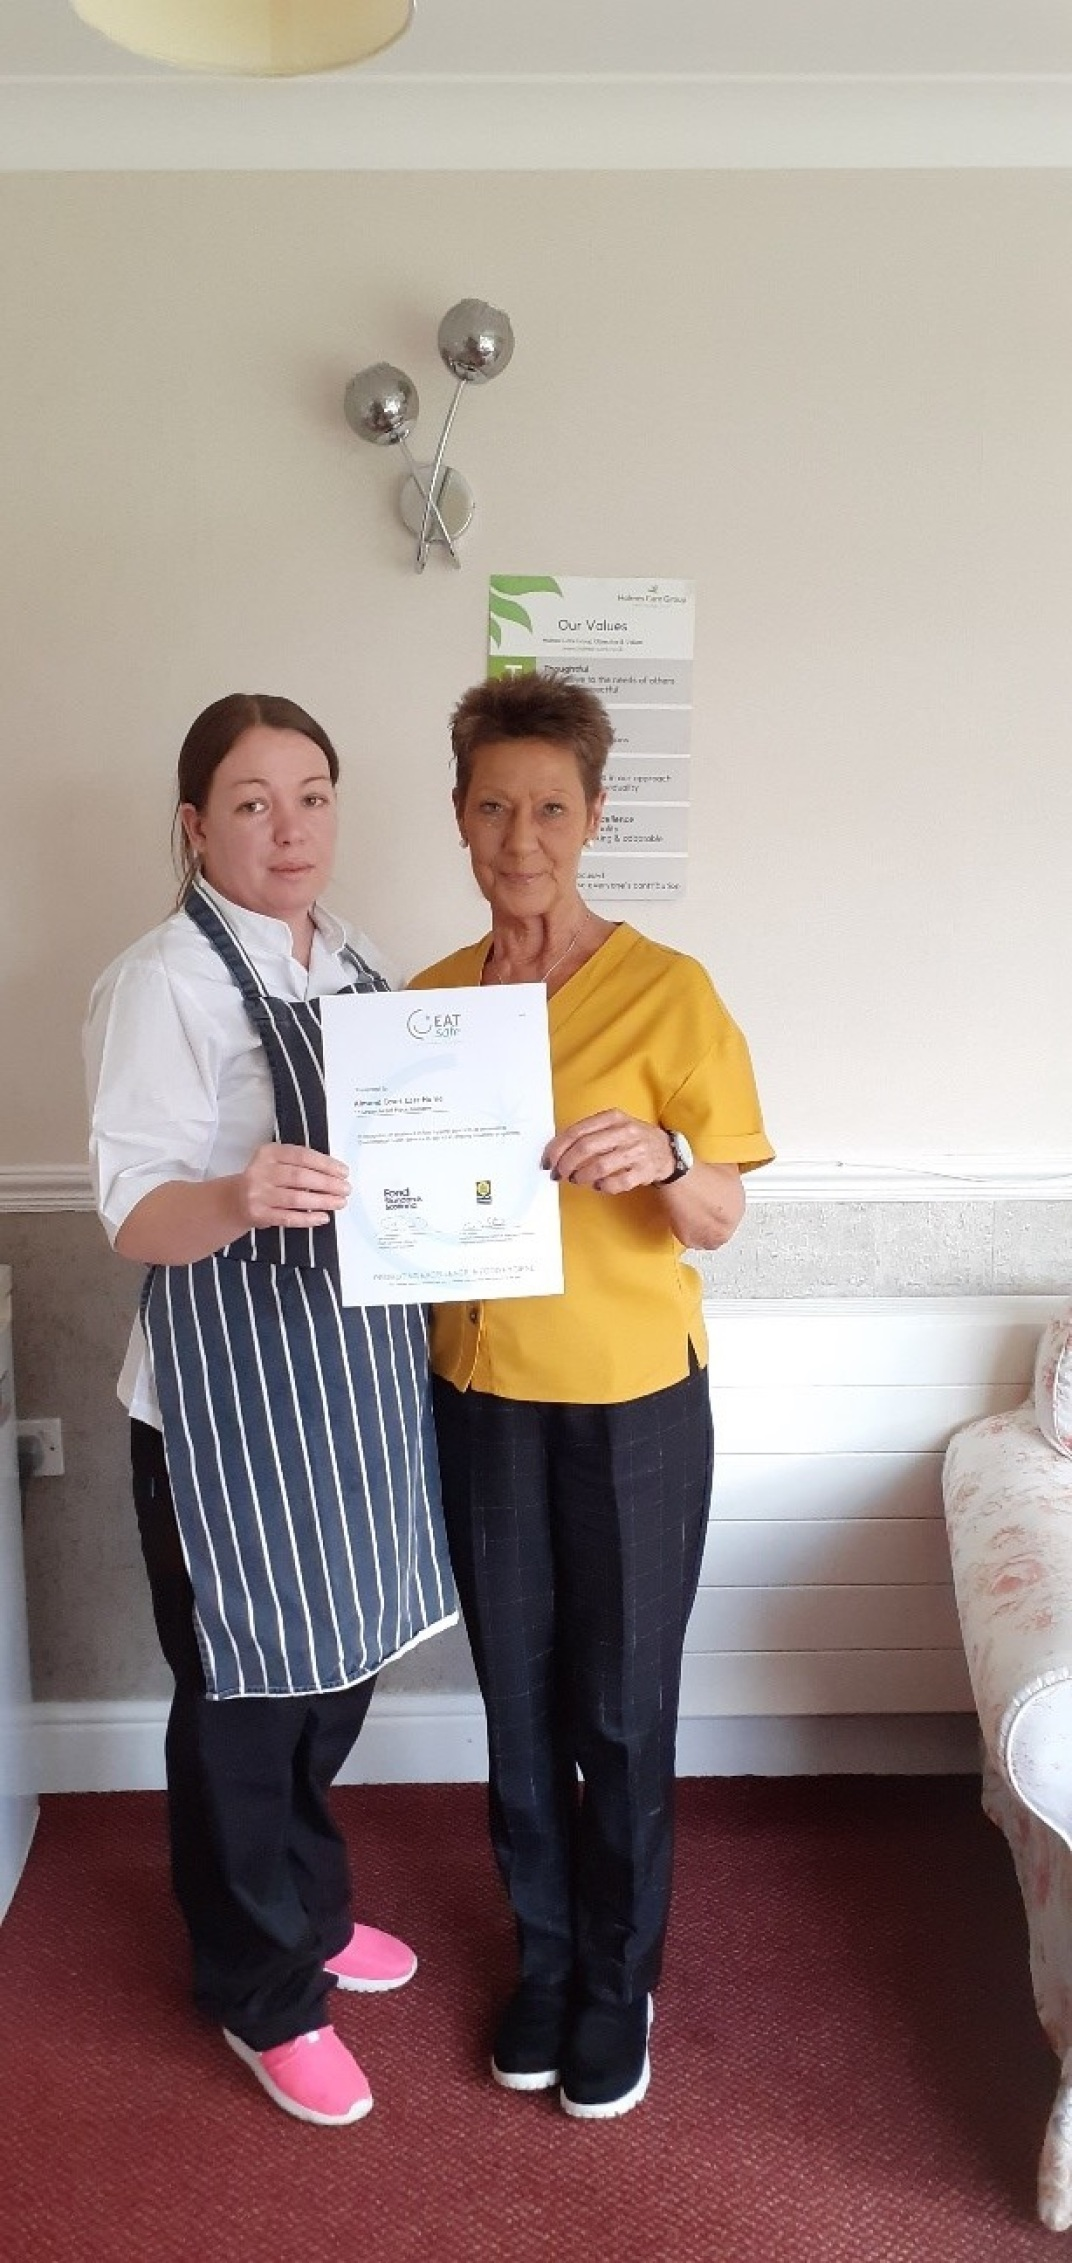 Head Chef Jacqueline (left) and Service Manager Lorna (right).